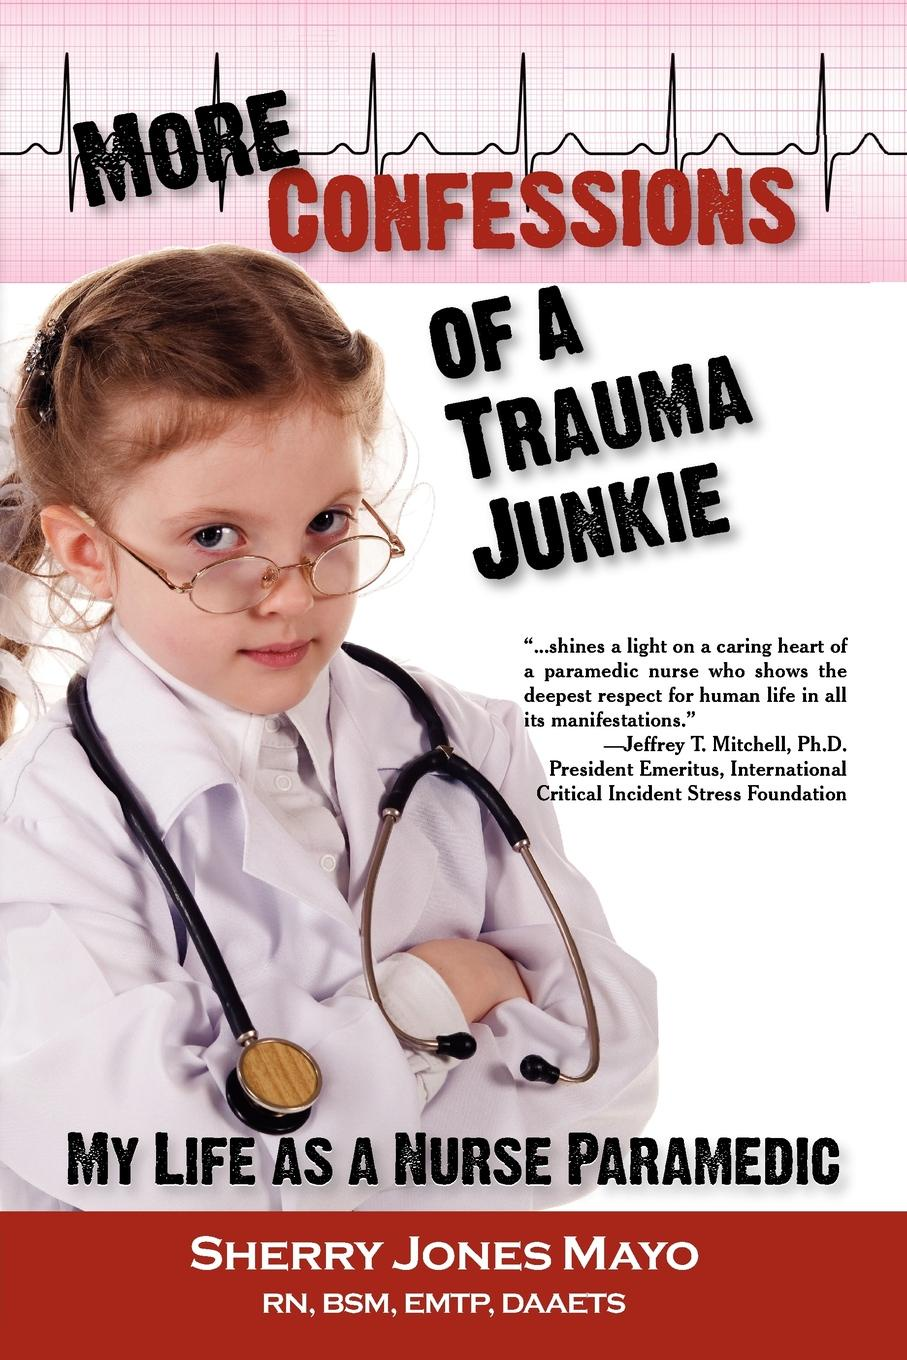 Sherry Jones Mayo More Confessions of a Trauma Junkie. My Life as a Nurse Paramedic gray work confessions of an american paramilitary spy